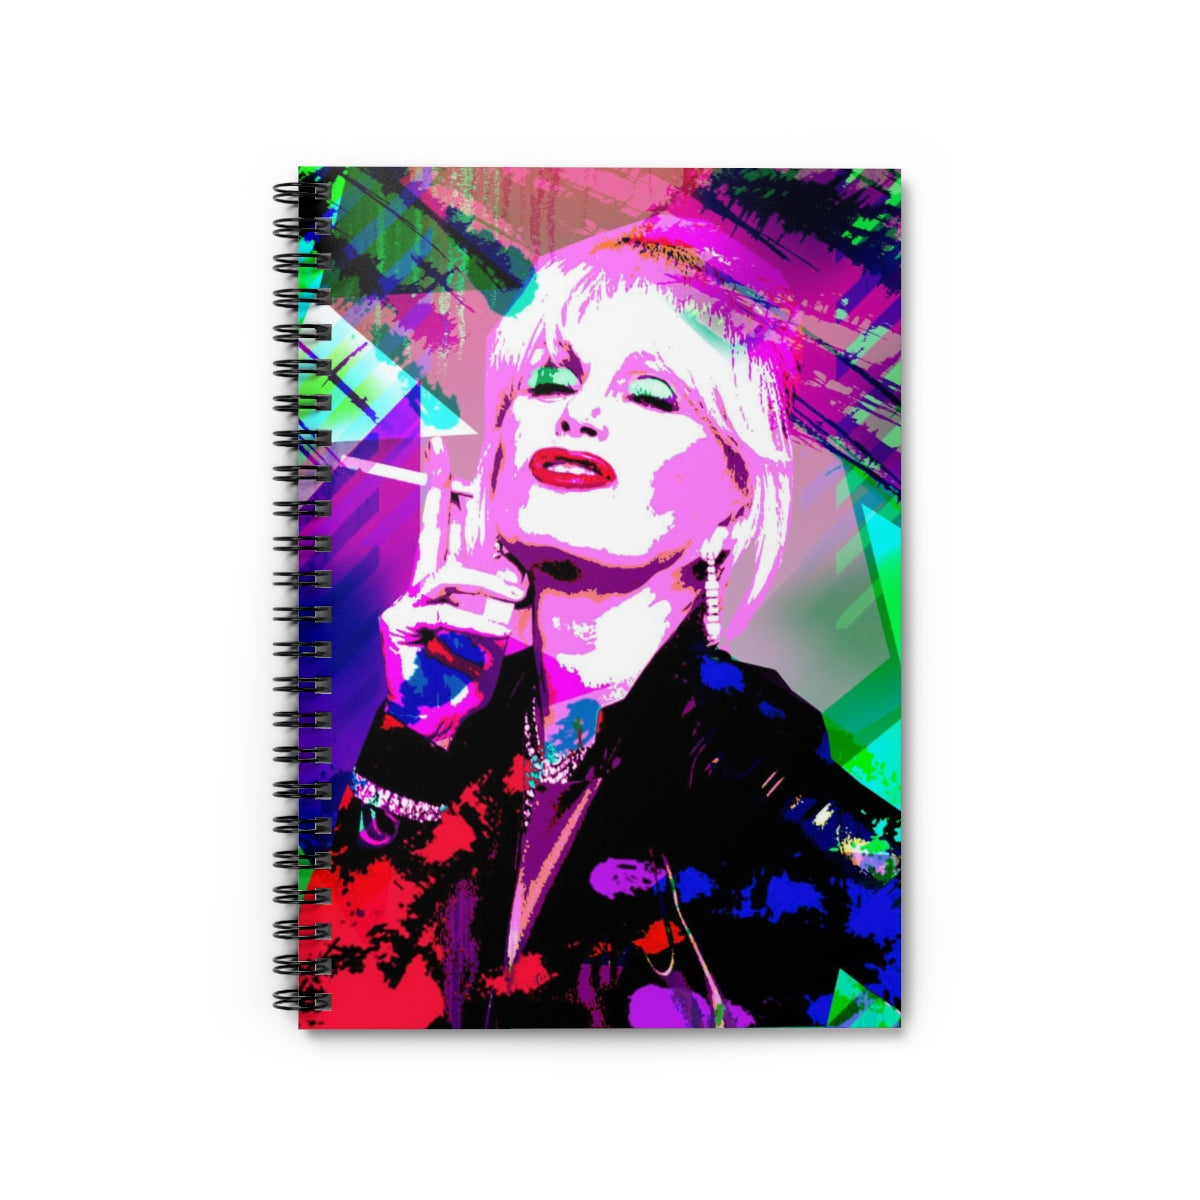 PATSY STONE Notebook - Ruled Line